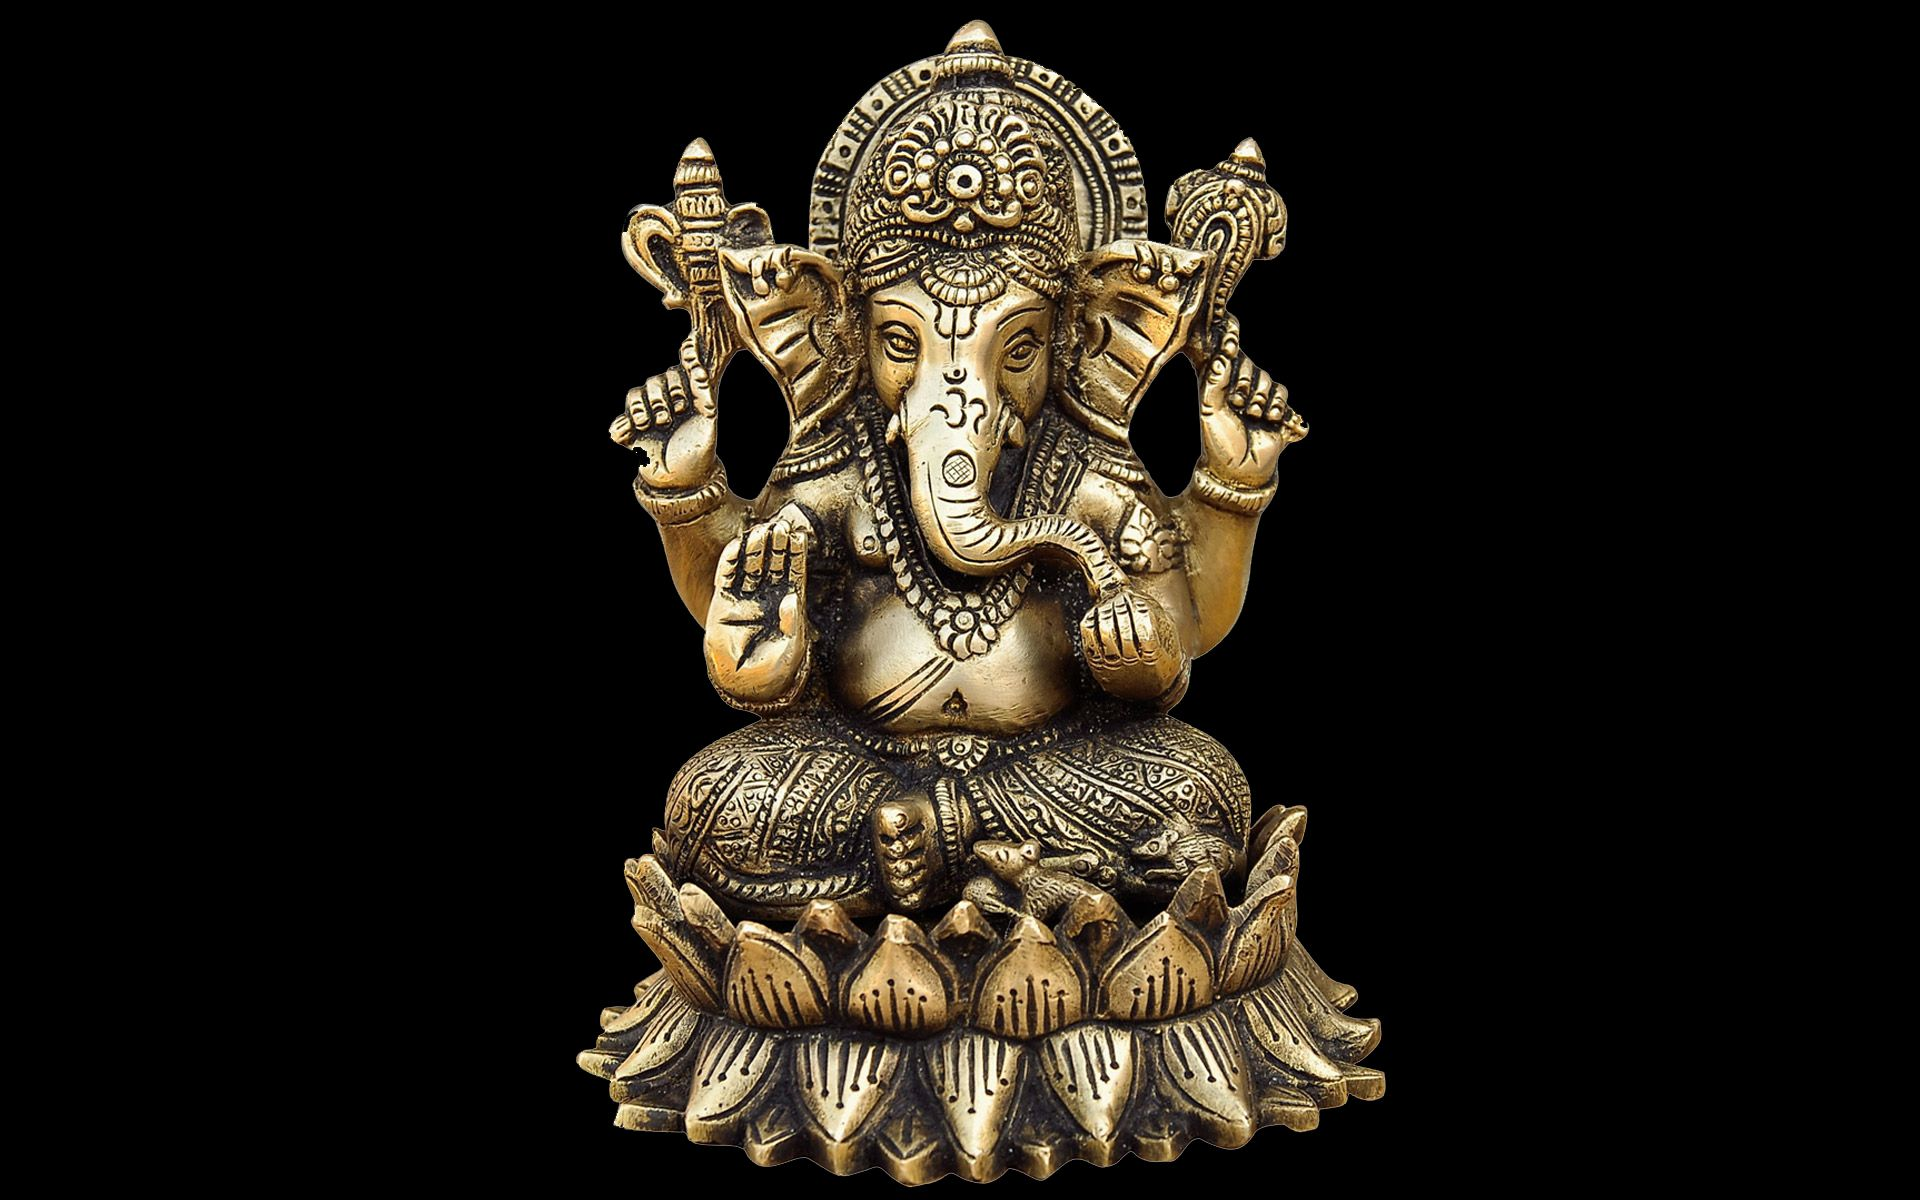 Shree Ganesh Hd Images: Amazing New Art Of Lord Ganesha HD Wallpaper